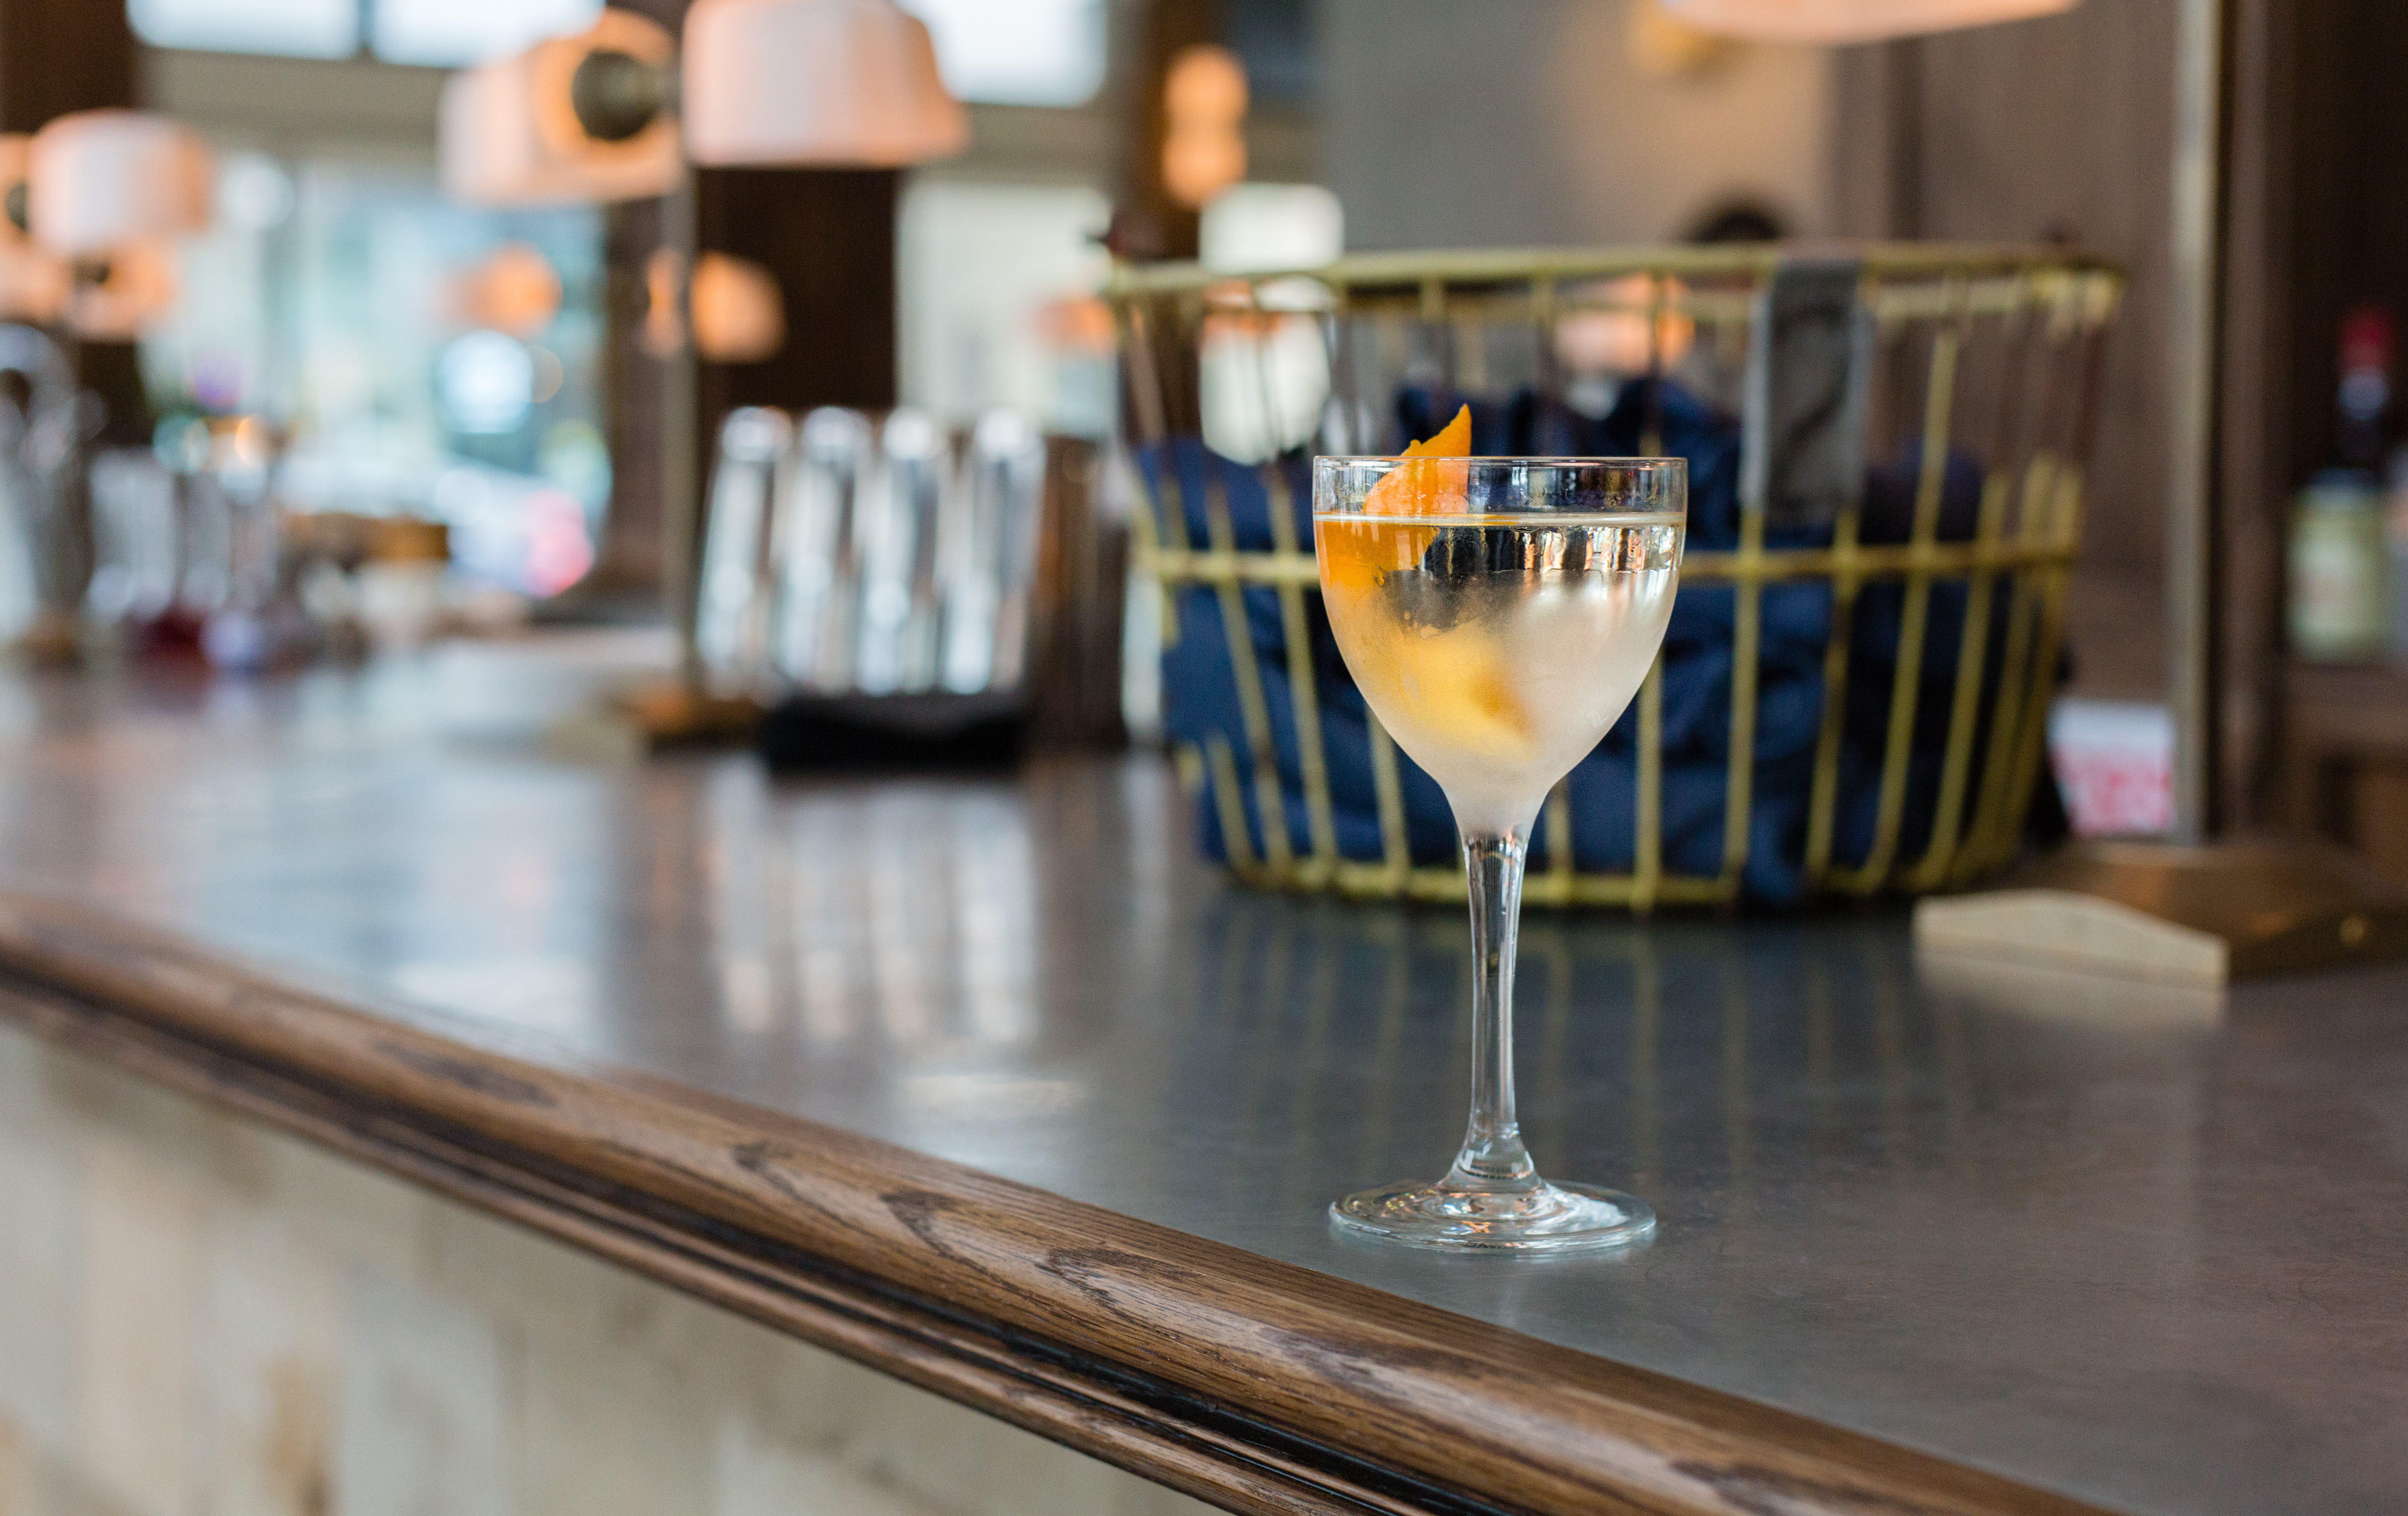 The Kex Hotel's Duchess cocktails